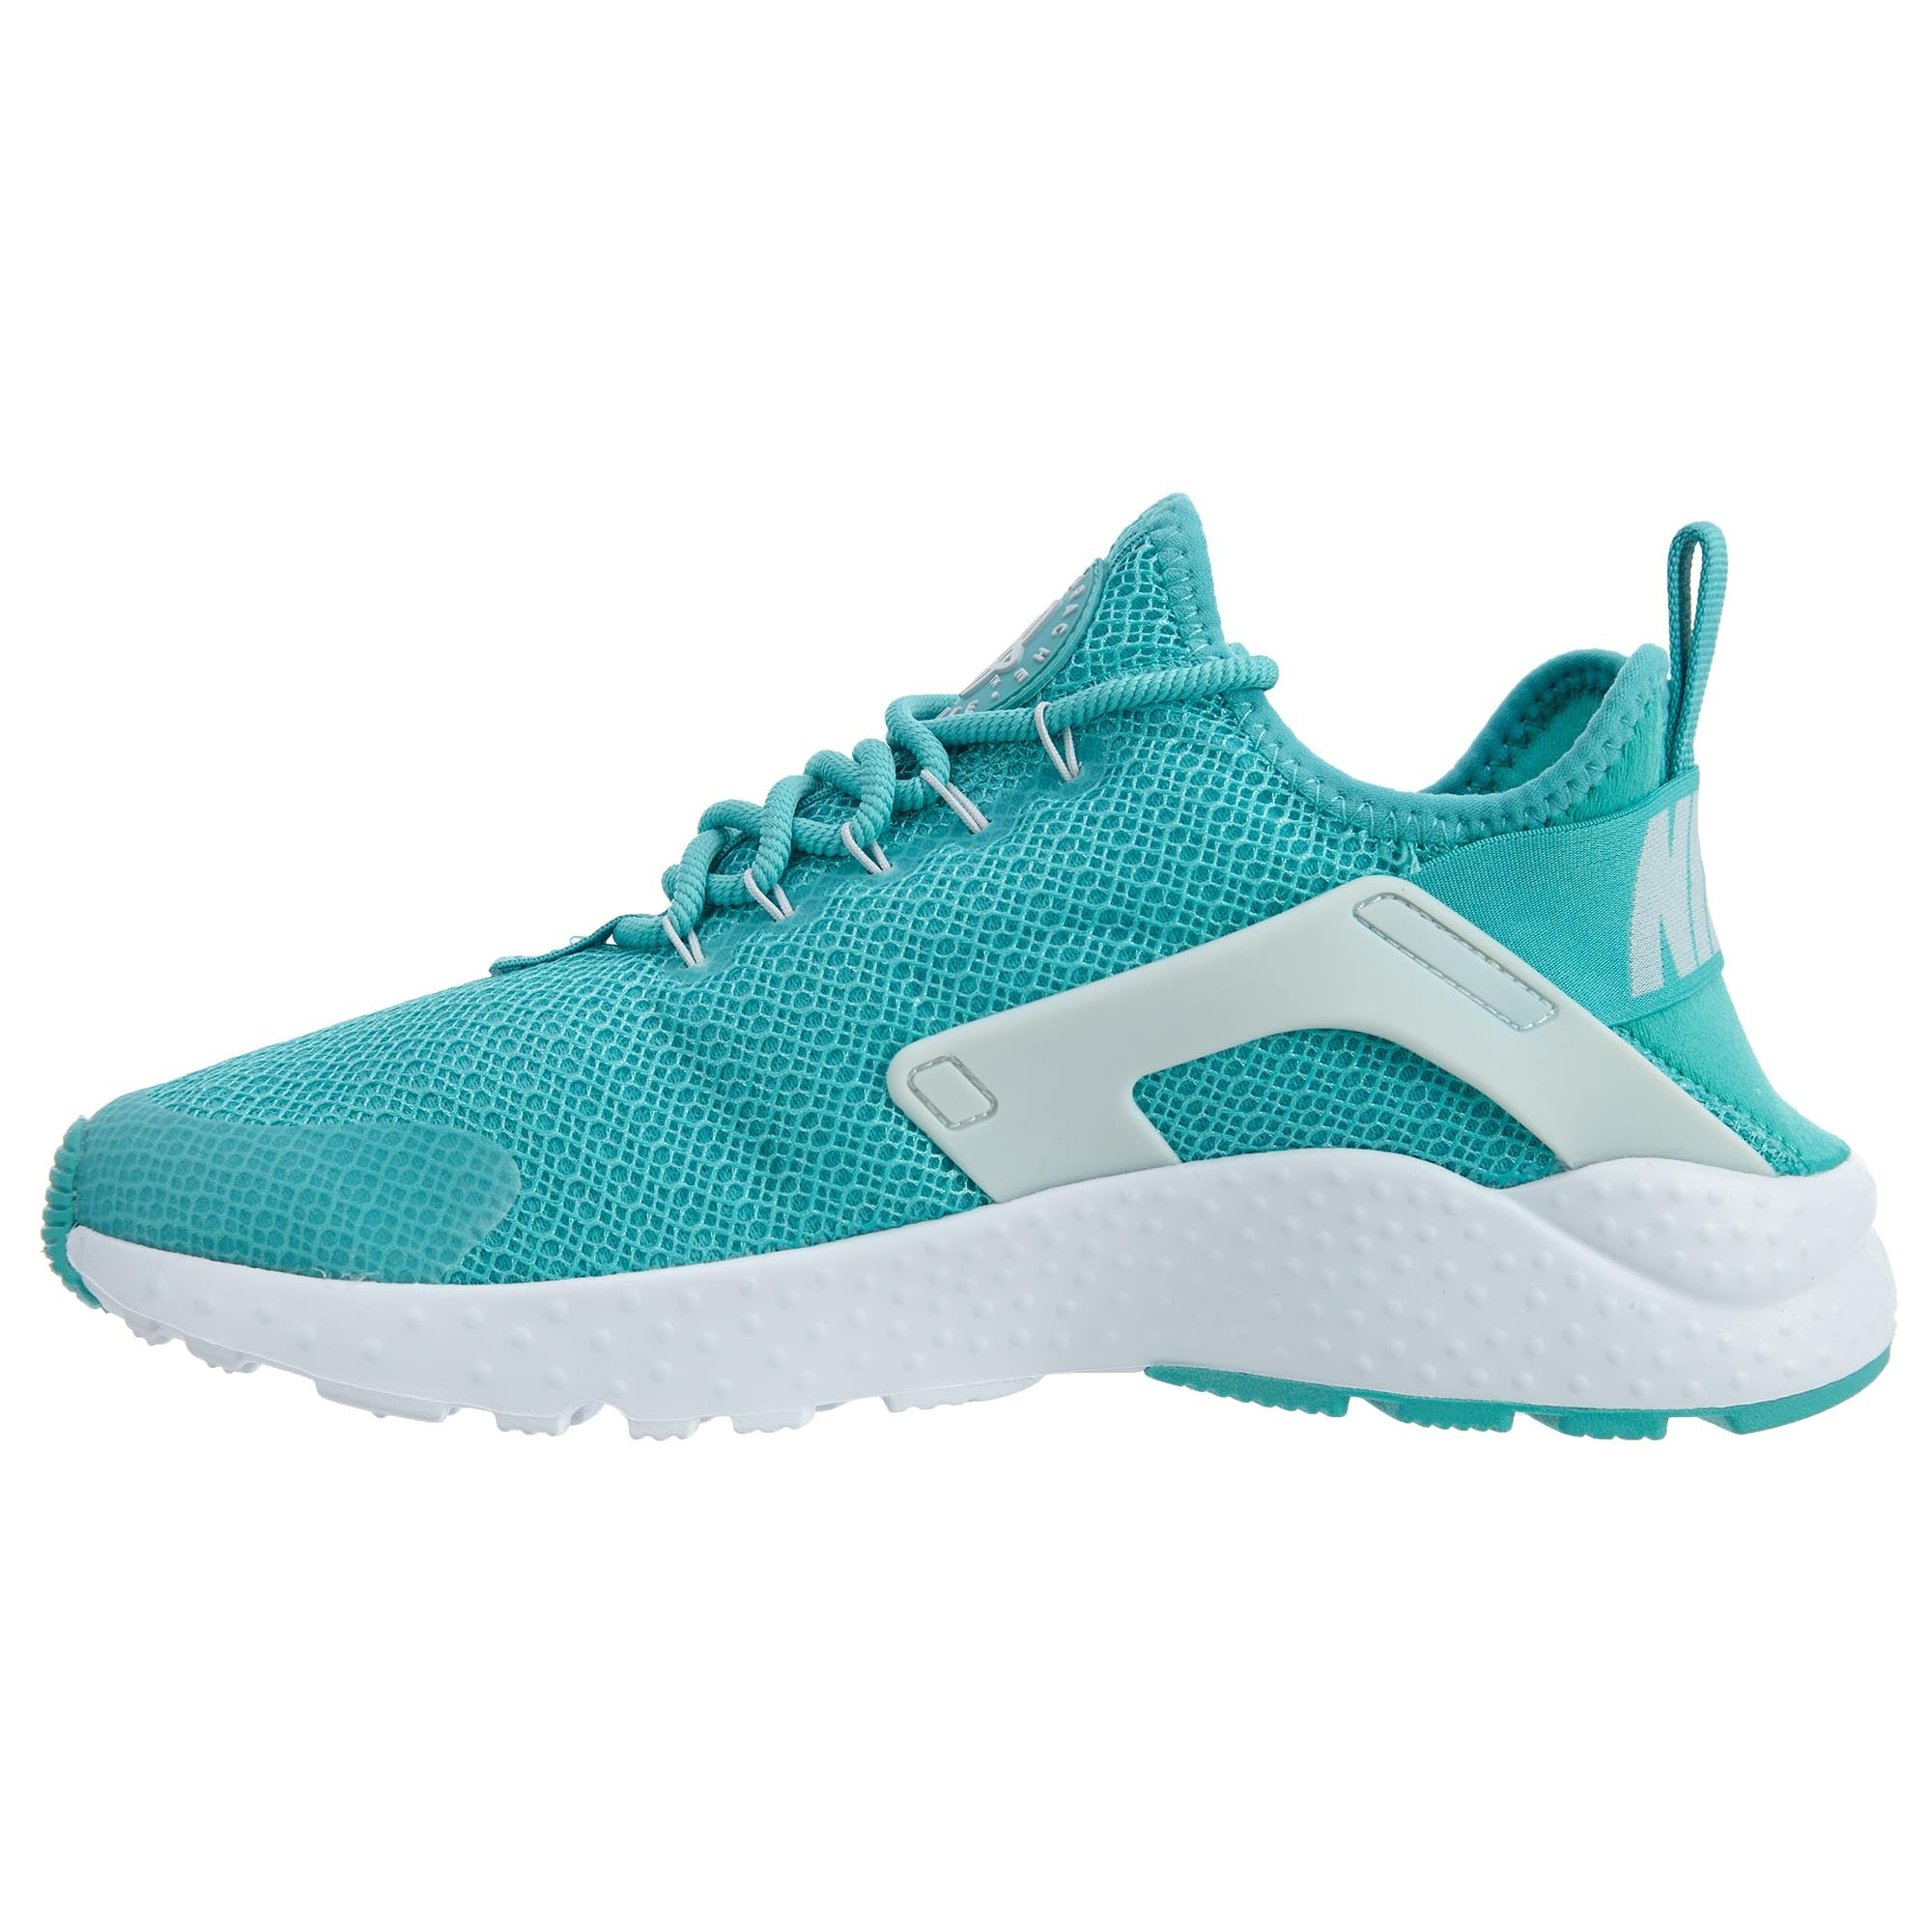 a5e1efa64a23 Nike Air Huarache Run Ultra Washed Teal Womens Style  819151